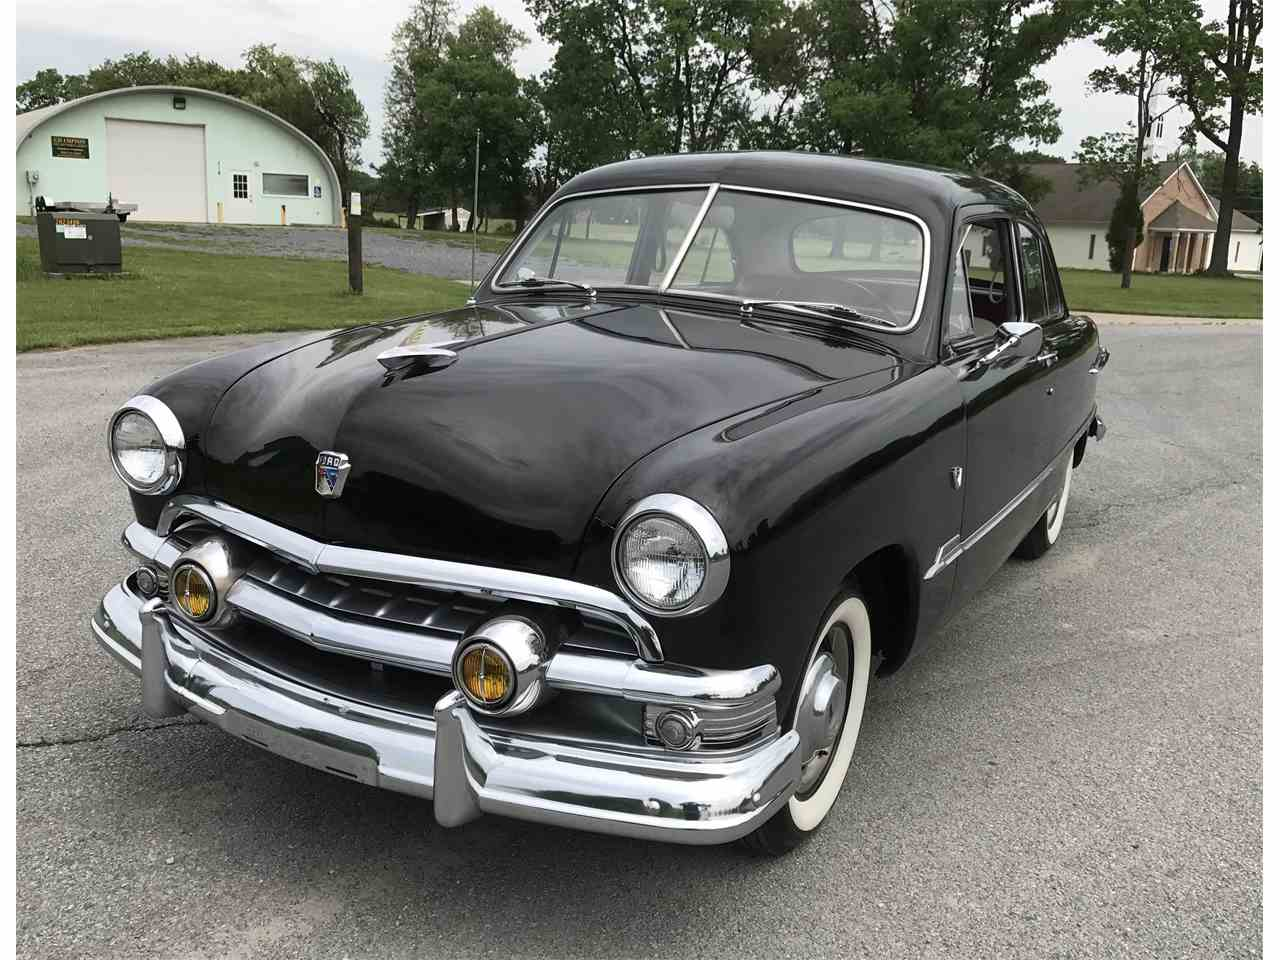 1951 Ford Custom For Sale In Harpers Ferry West Virginia 25425 besides 304 Ford Edge 2015 Black Wallpaper 1 in addition 2017 Ford Explorer Xlt Sport Appearance Package To Bow In Chicago also Ford Launches Top Spec Ford Edge Vignale Suv furthermore 1702 Spied 2019 Ford Ranger Mule Says Gday Mate. on ford edge grill